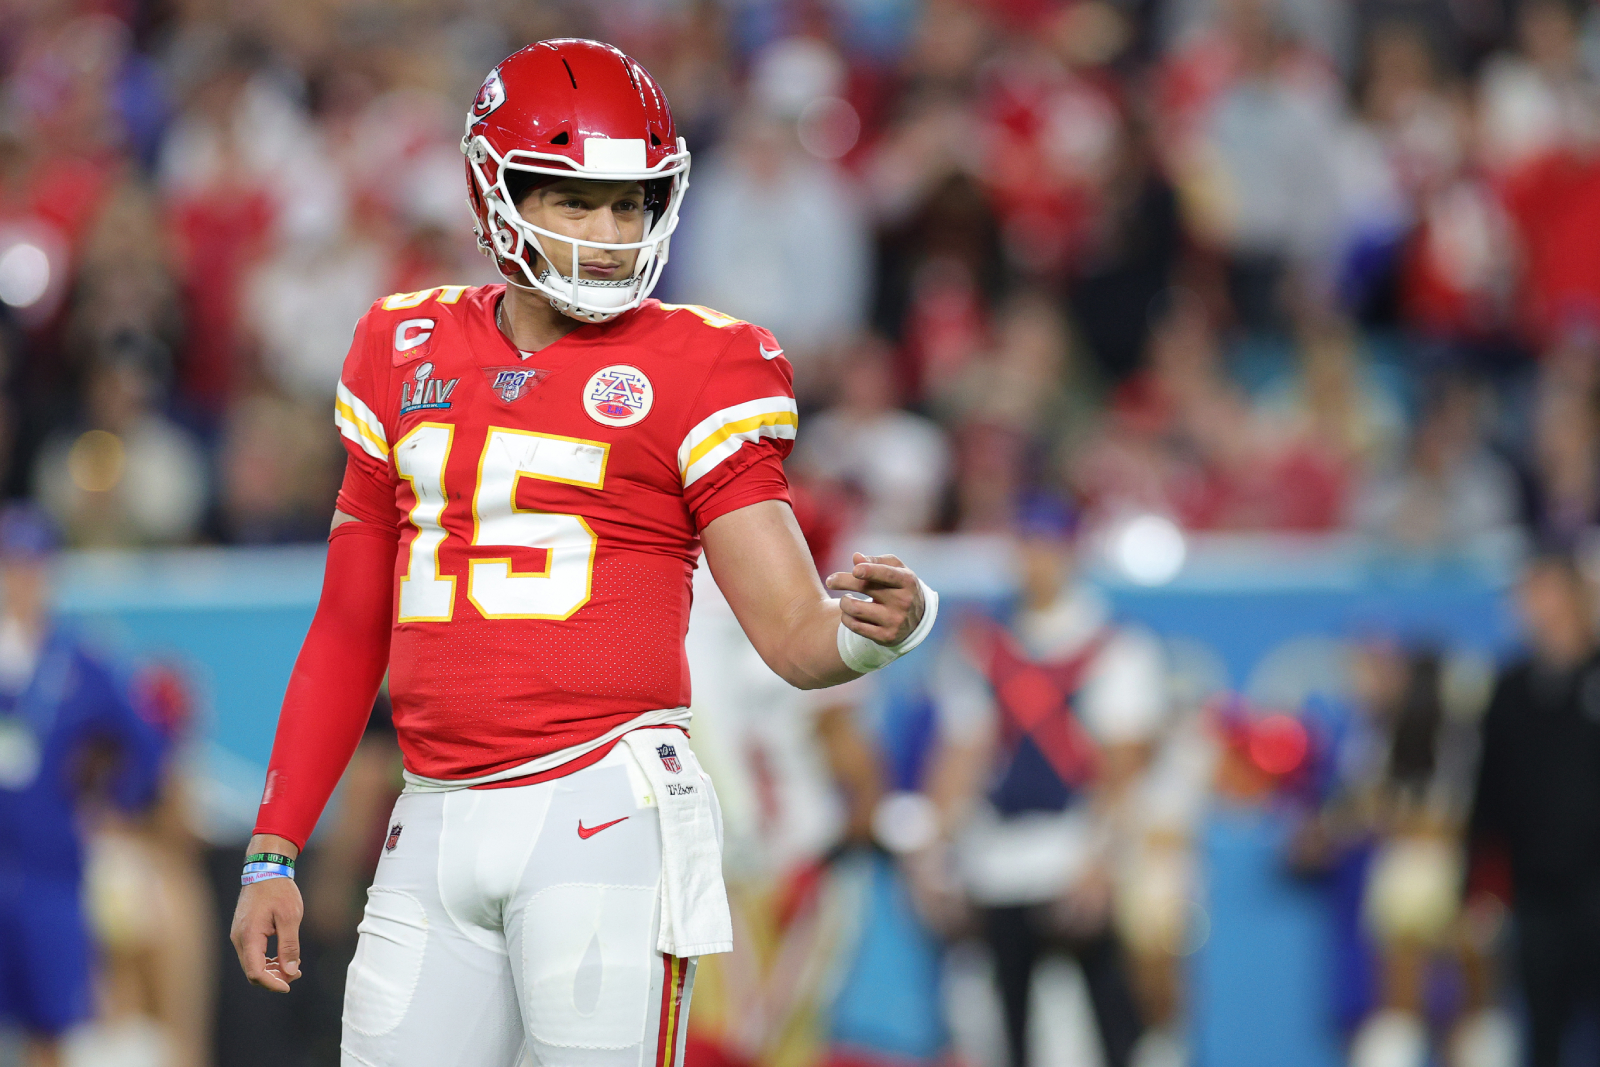 Patrick Mahomes is now a rich man after he got a new contract from the Kansas City Chiefs. Now a TV star is sending him a financial warning.